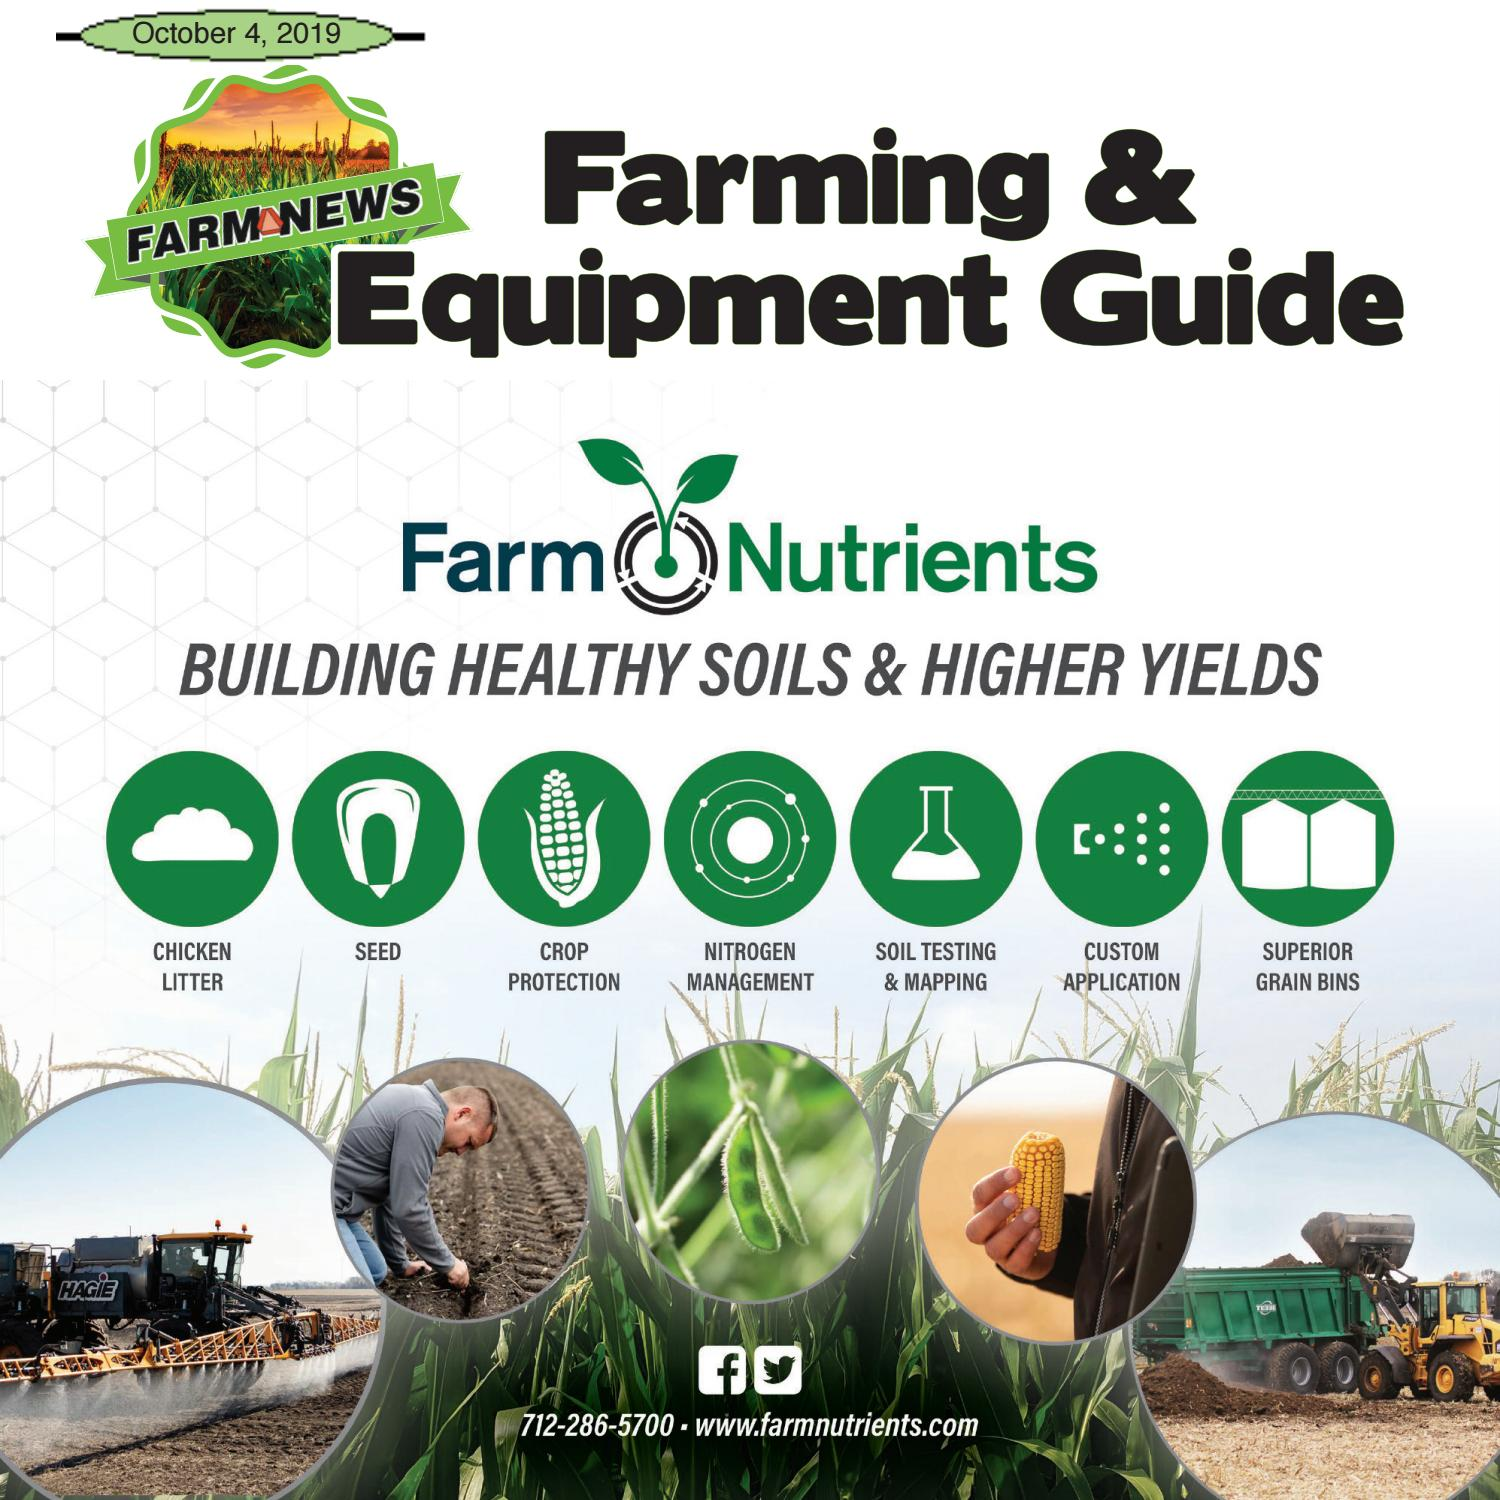 Farming & Equipment Guide October 4th, 2019 By Newspaper